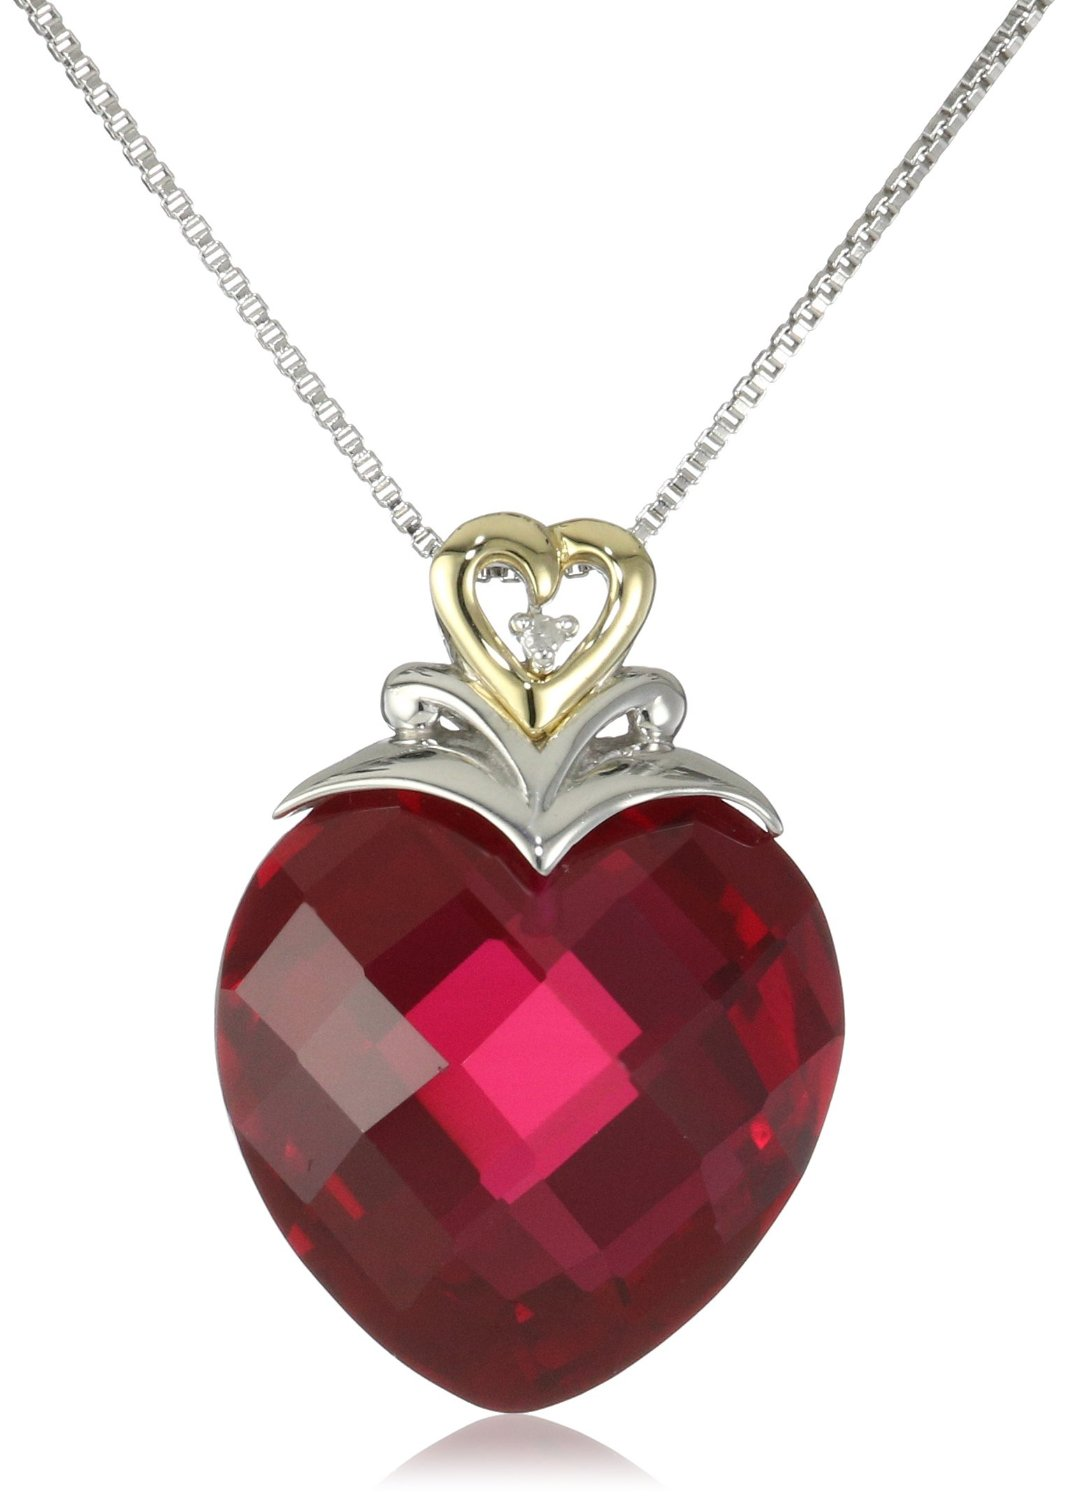 Beautiful ruby jewelry pictures pinteresting pictures xpy sterling silver and 14k yellow gold created ruby heart and diamond accent pendant necklace aloadofball Gallery